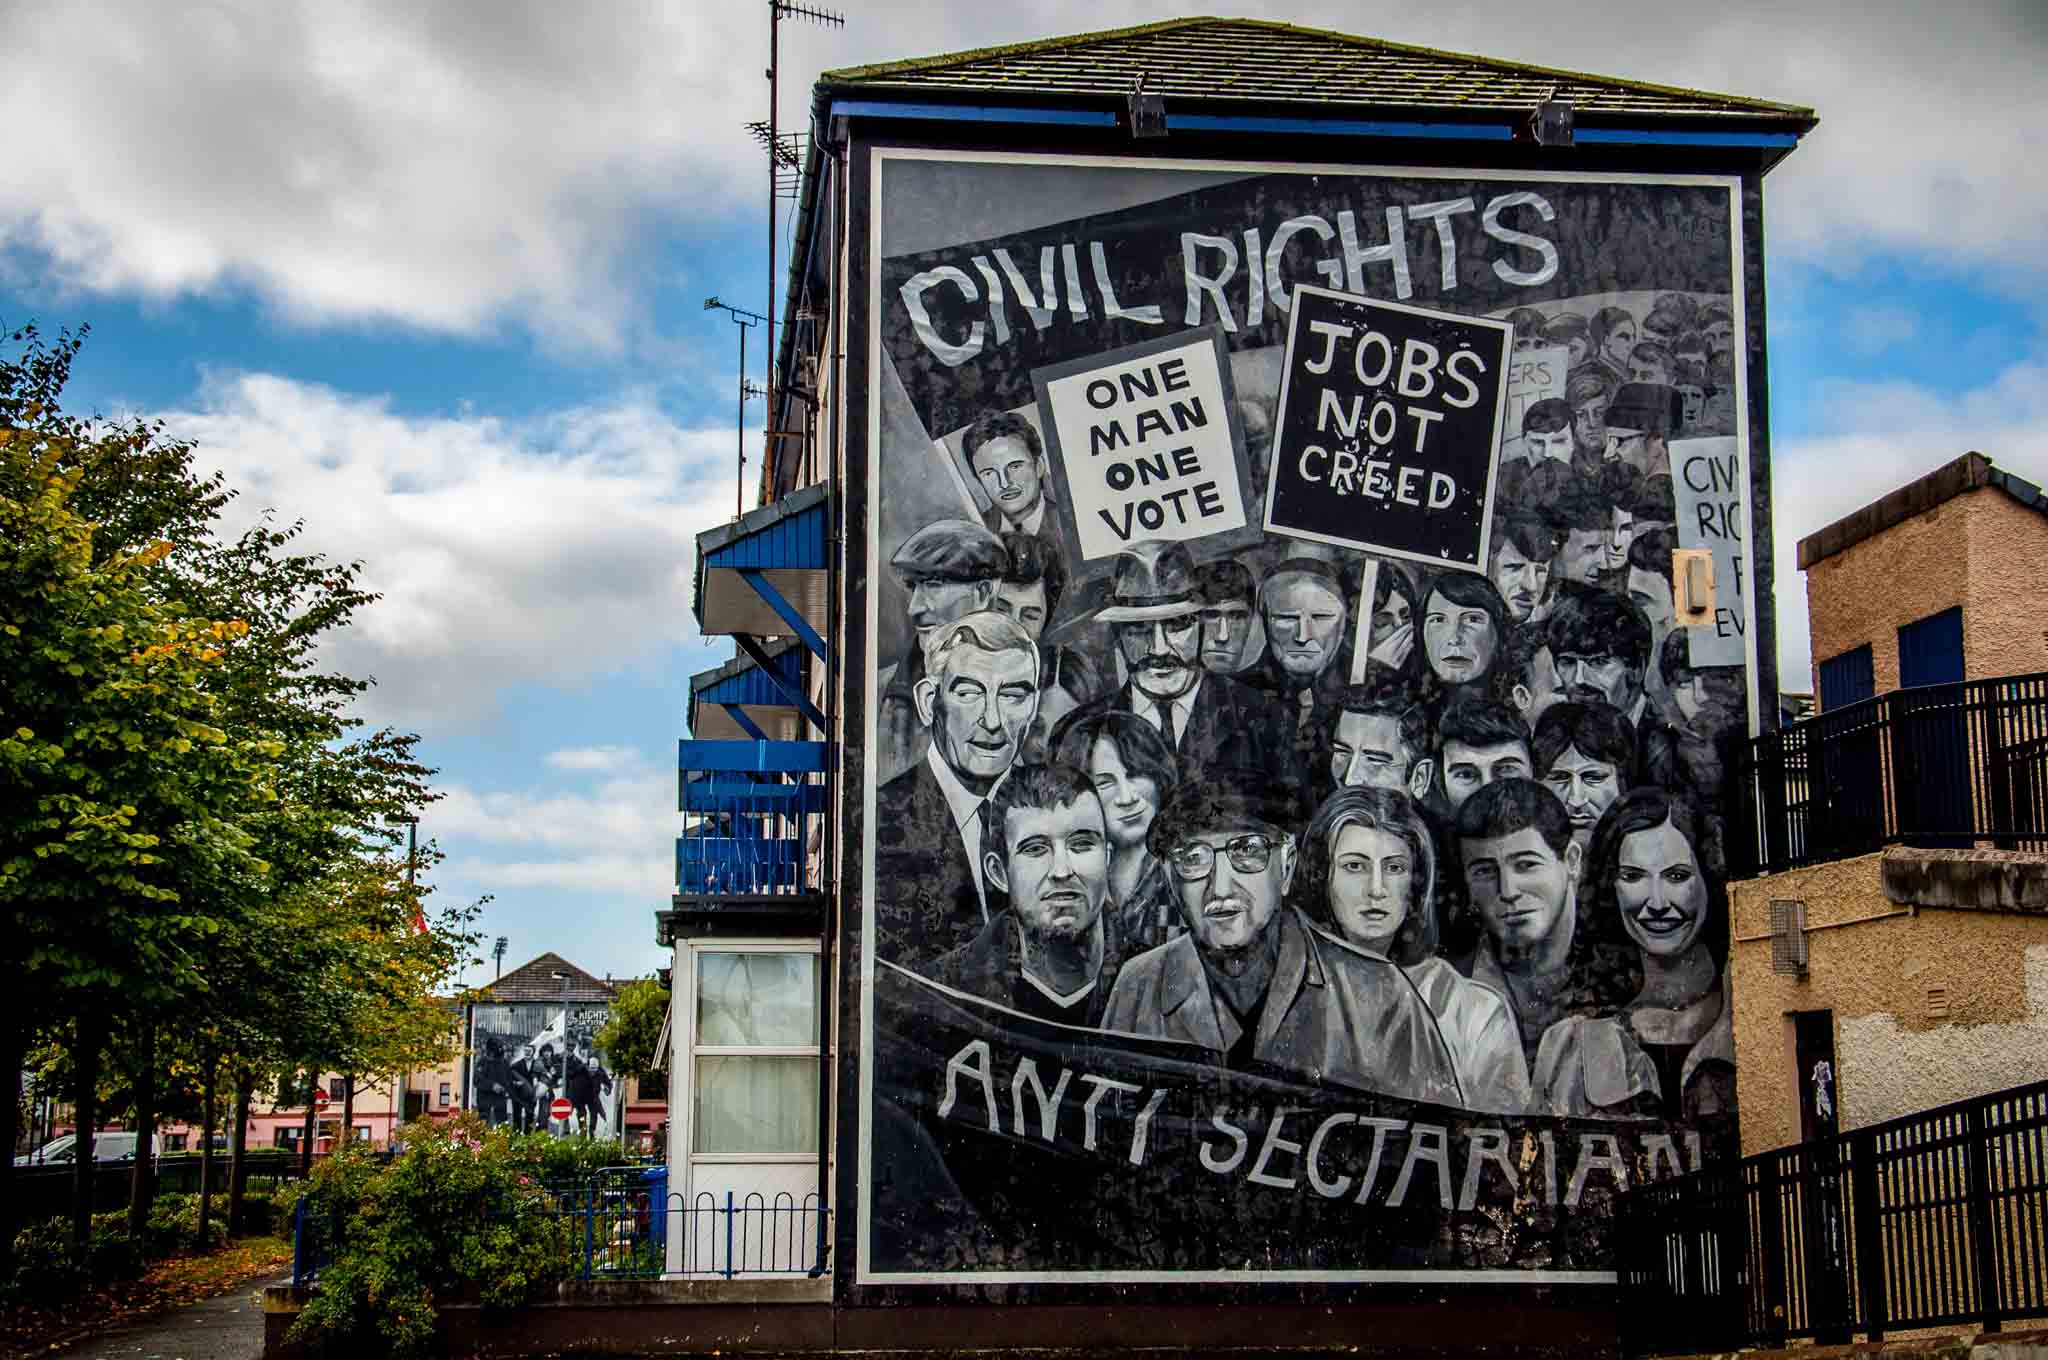 Civil rights leaders mural in Derry Northern Ireland